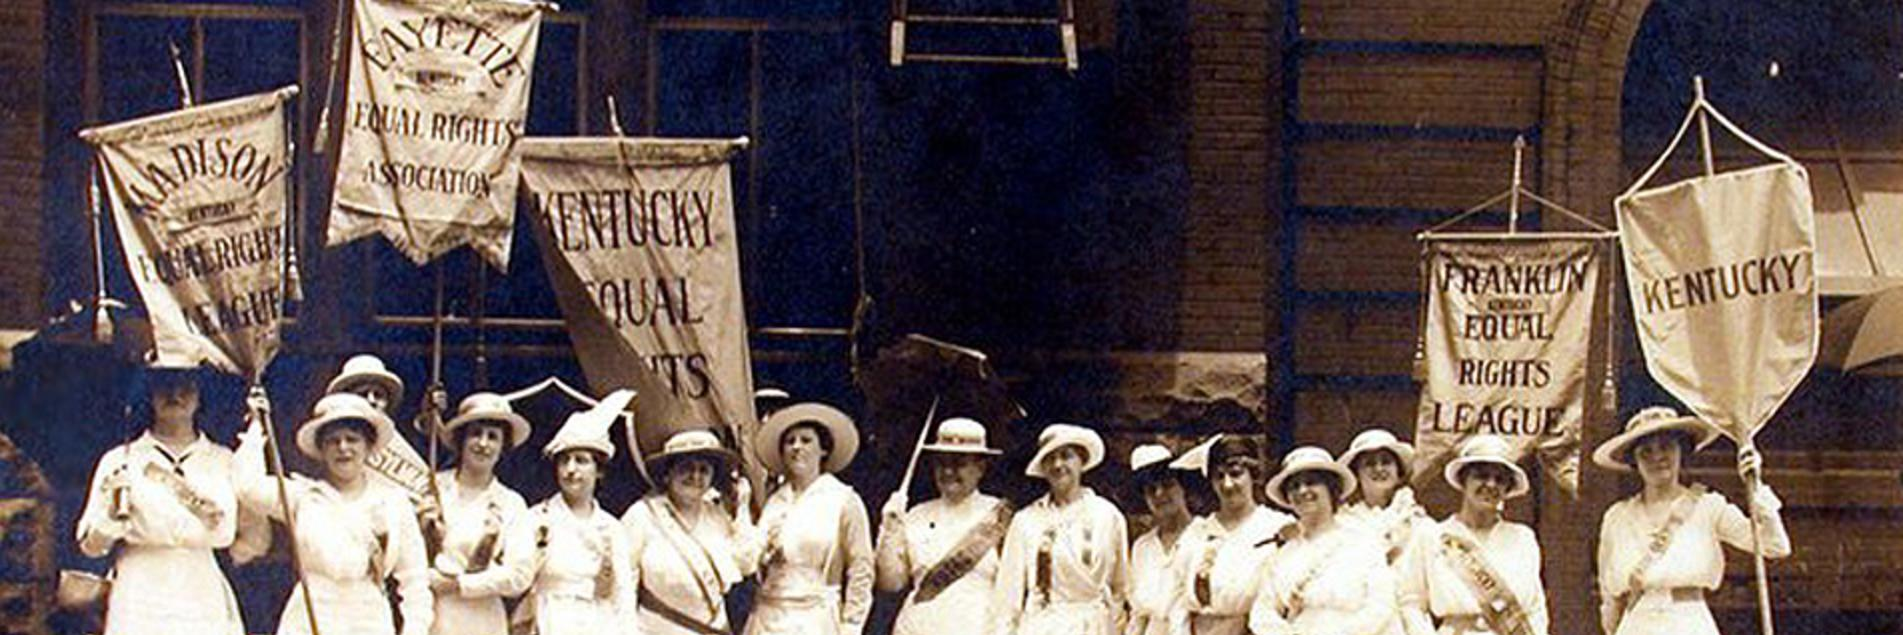 Kentucky Women Marching in St. Louis